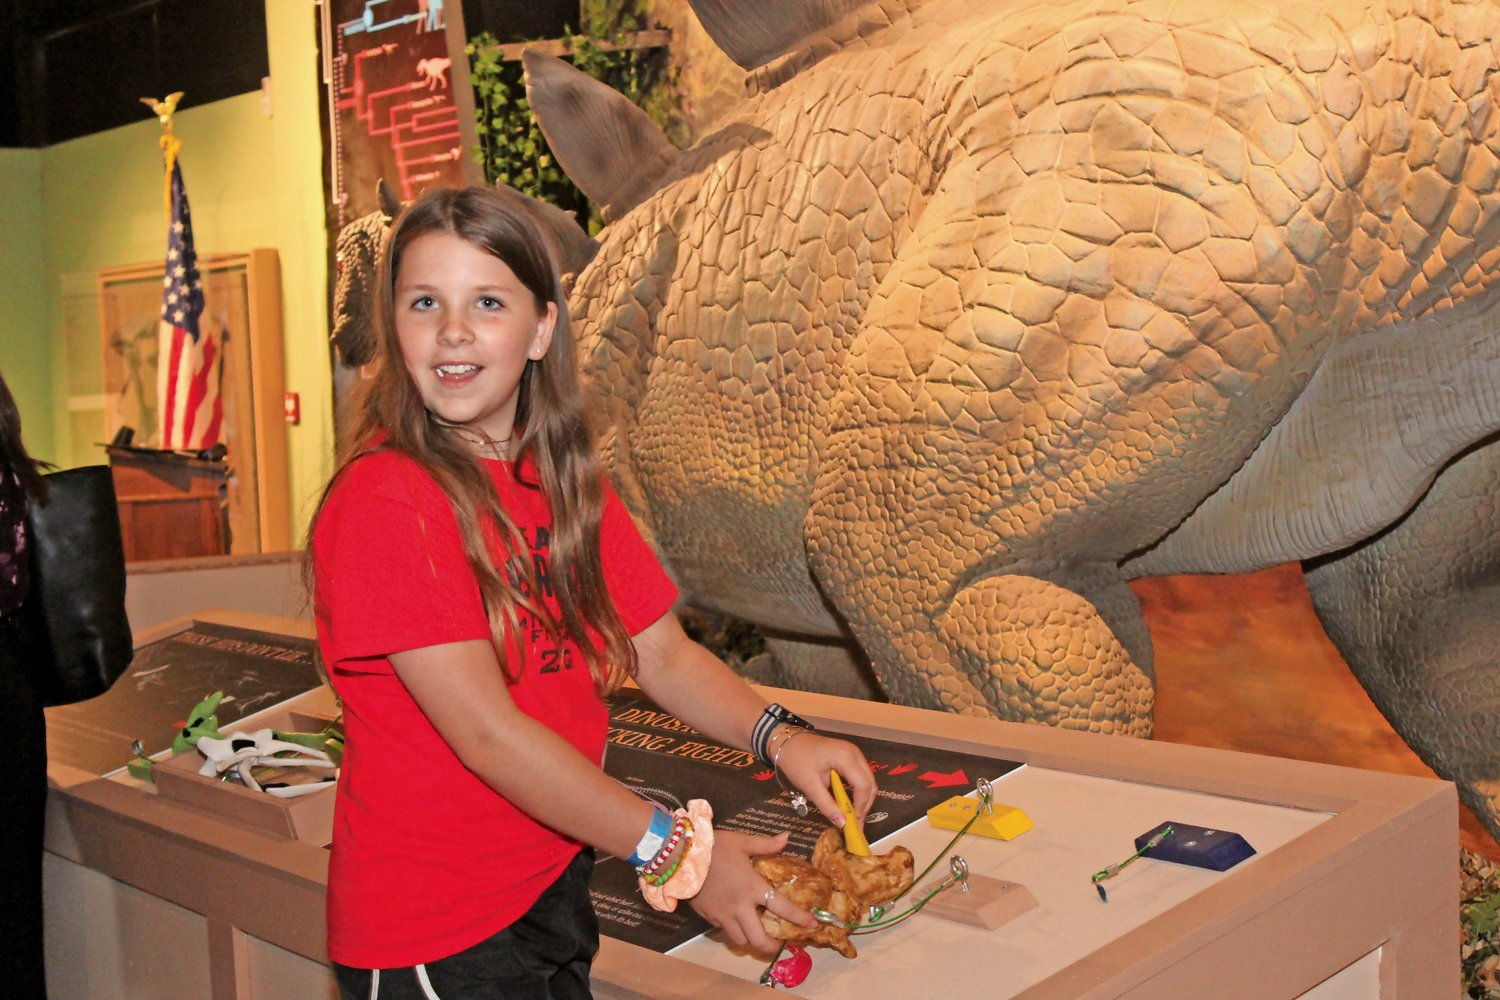 Tegan Jarnagin, 12, far left, was one of few early visitors to the new exhibit, which officially opened on July 15.